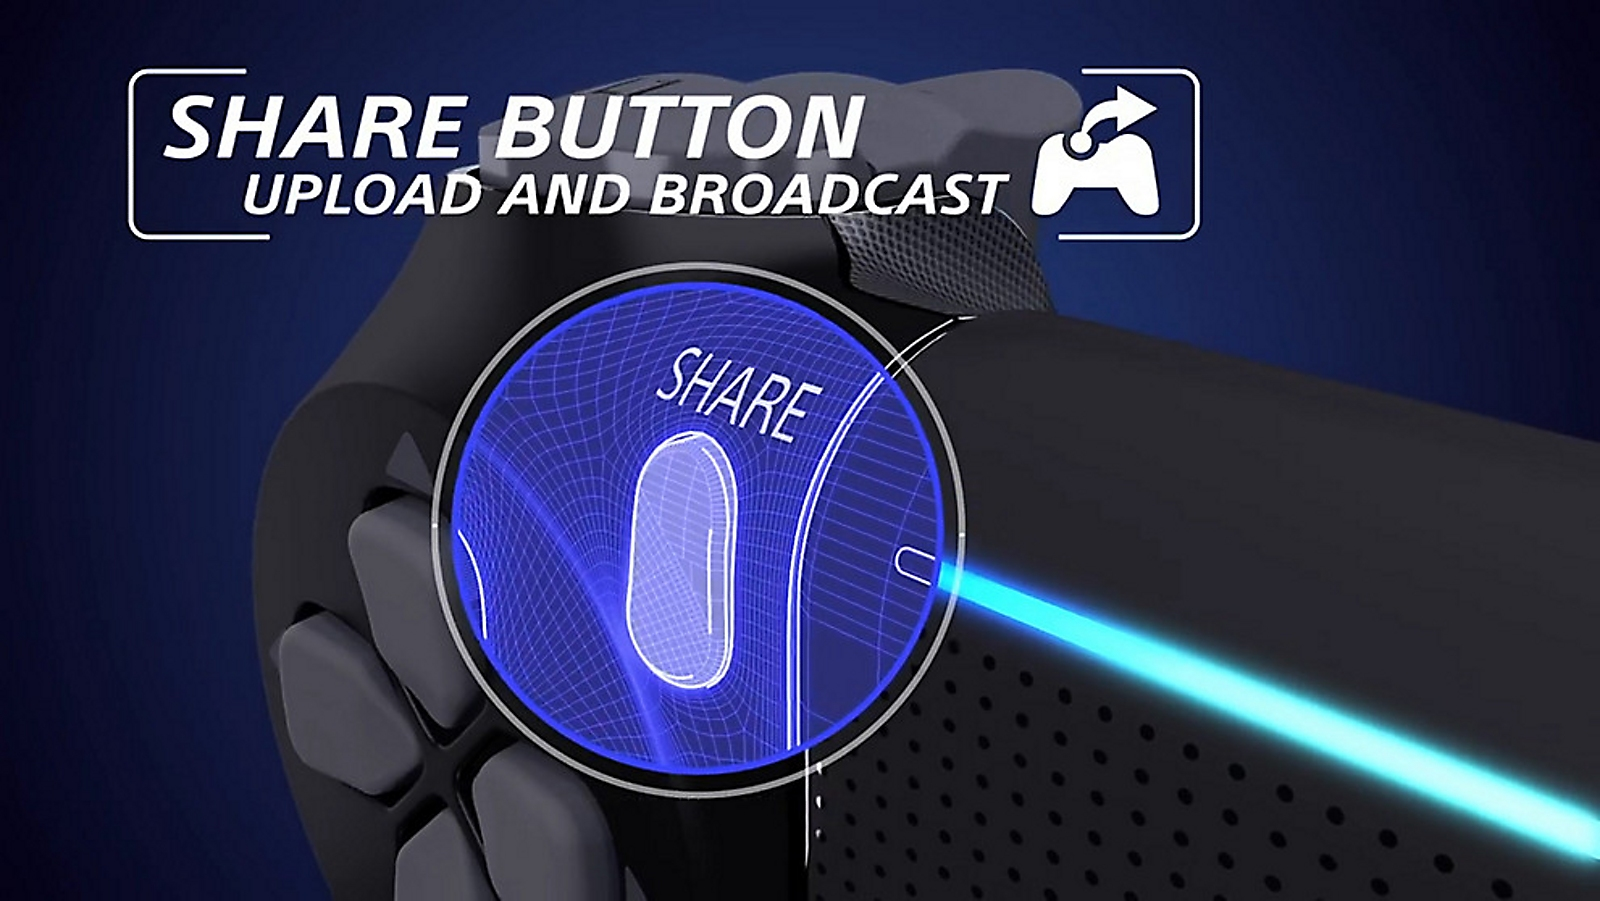 dualshock-4-share-button-feature-image-01-en-27may20 (1600×901)